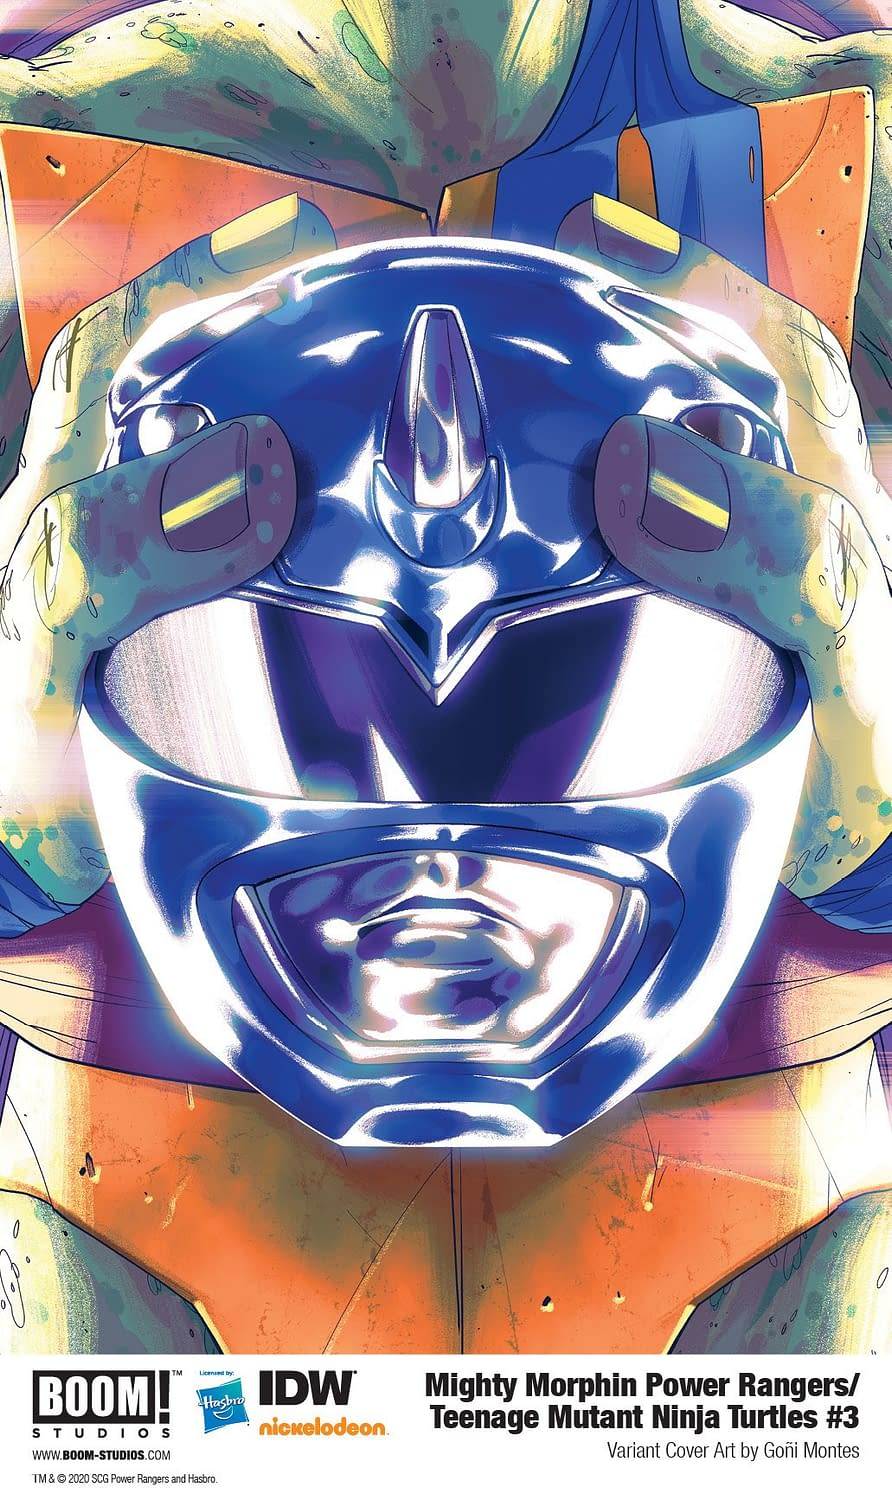 BOOM! Reveals Hot Speculator Tip About Power Rangers/TMNT #3